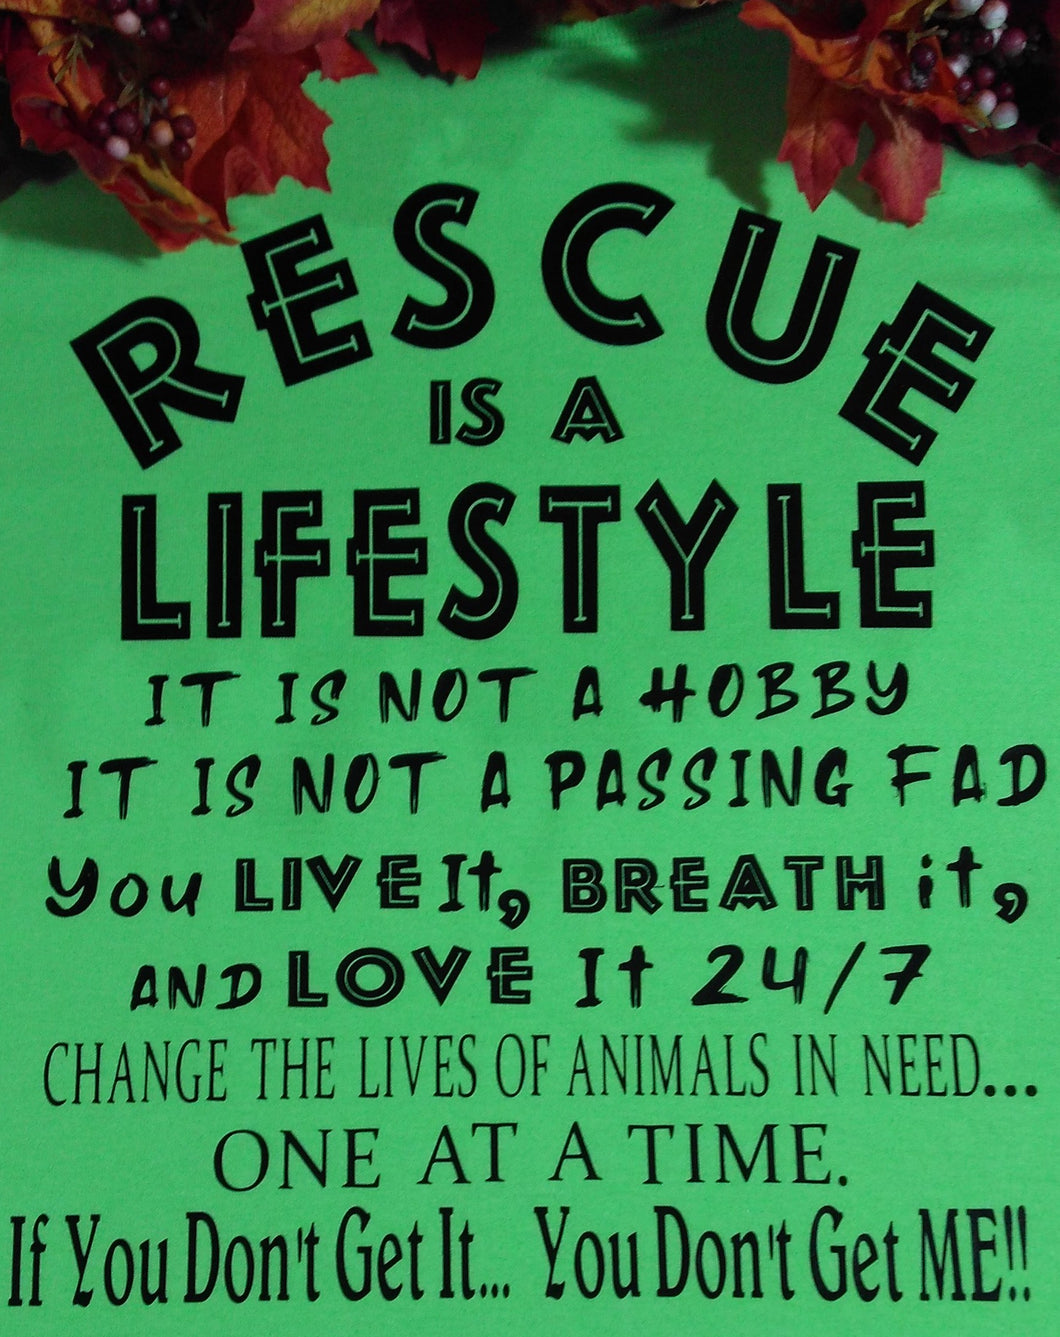 RESCUE IS A LIFESTYLE